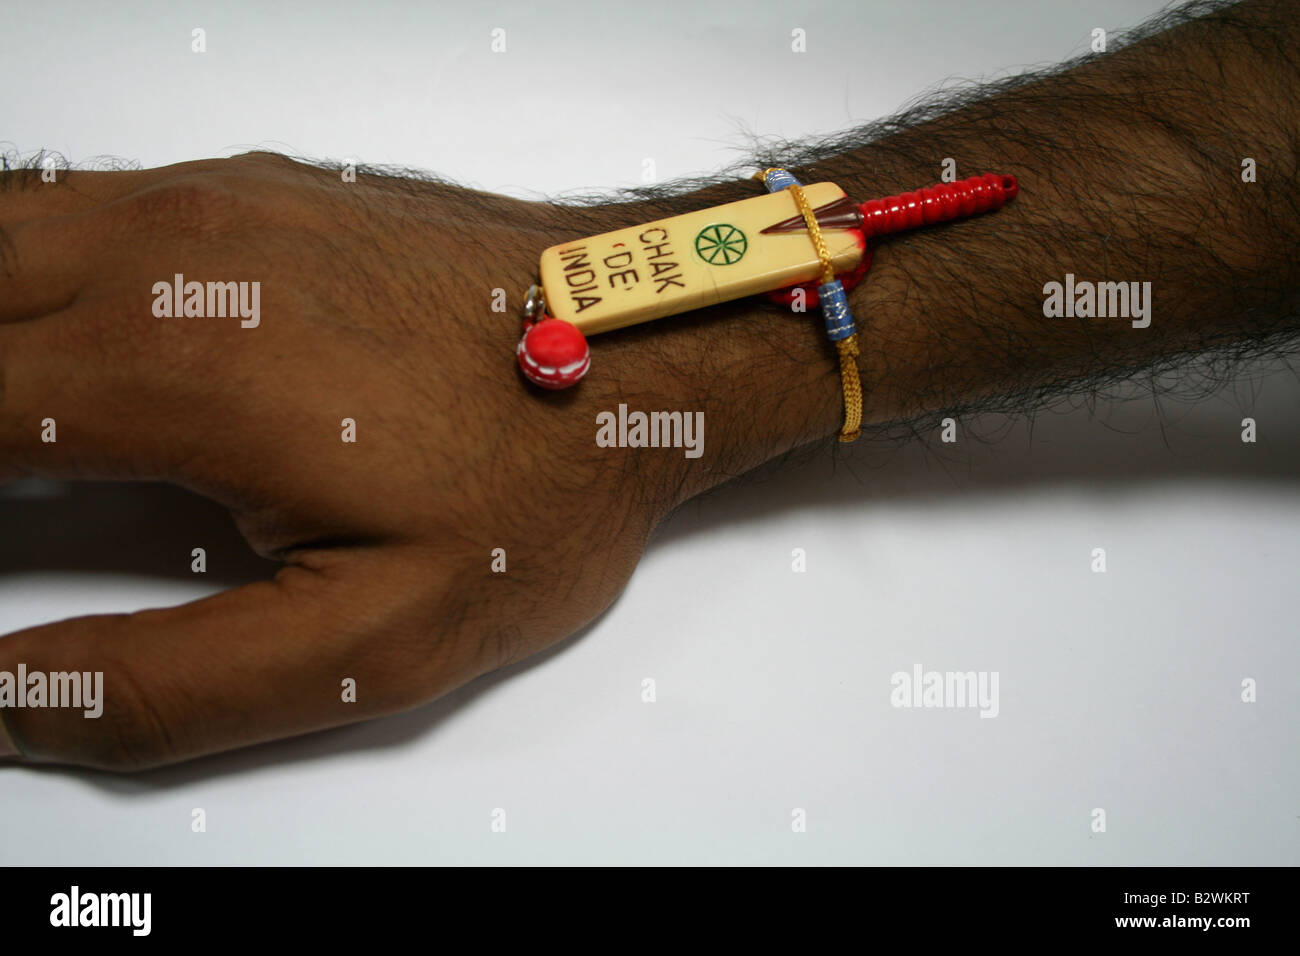 Cricket bat and ball tied to an Indian's hand on popular Indian festival raksha bandhan Stock Photo